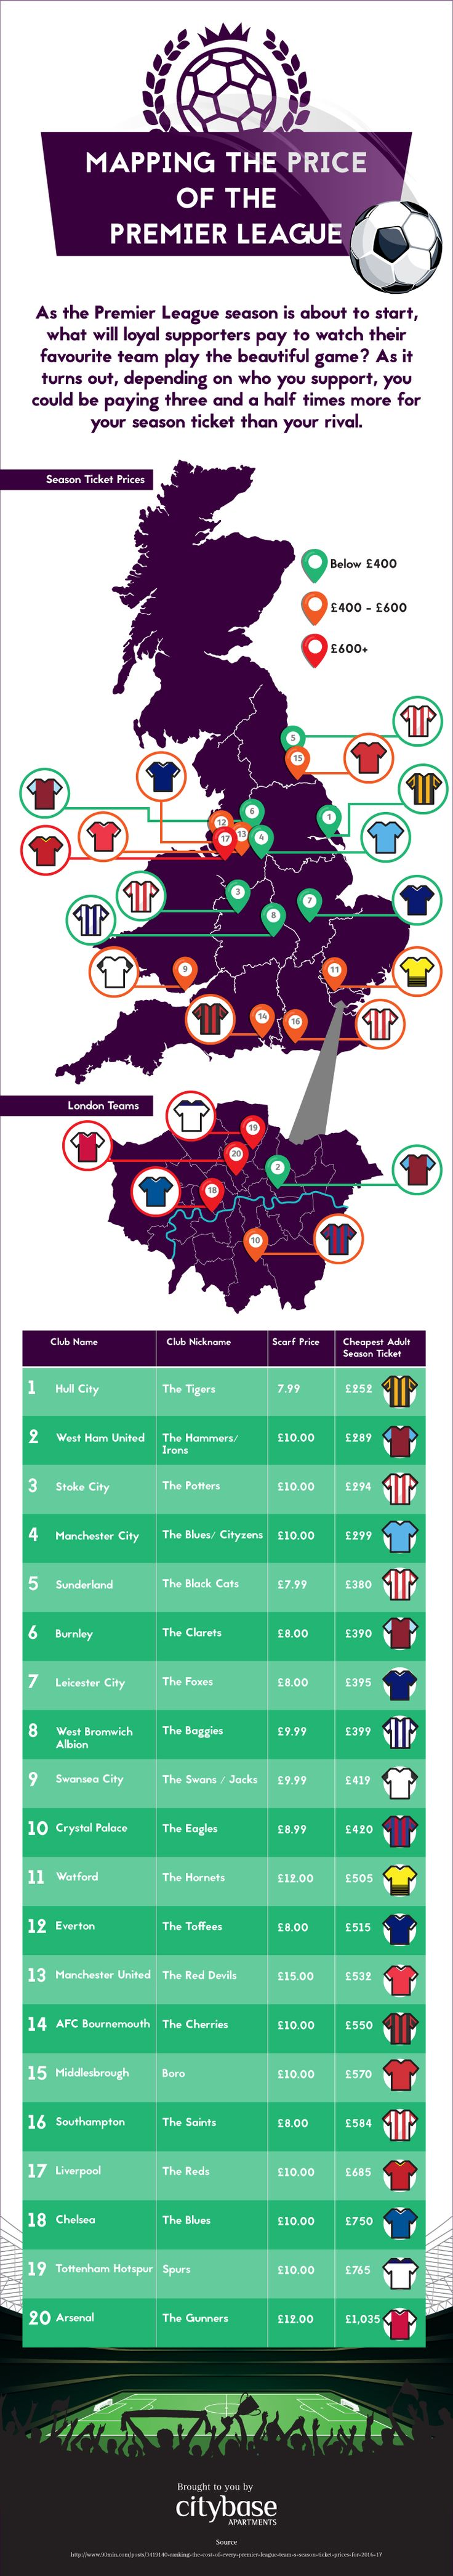 Mapping the Price of the Premier League 2016/17 #Infographic #Sport #Finance